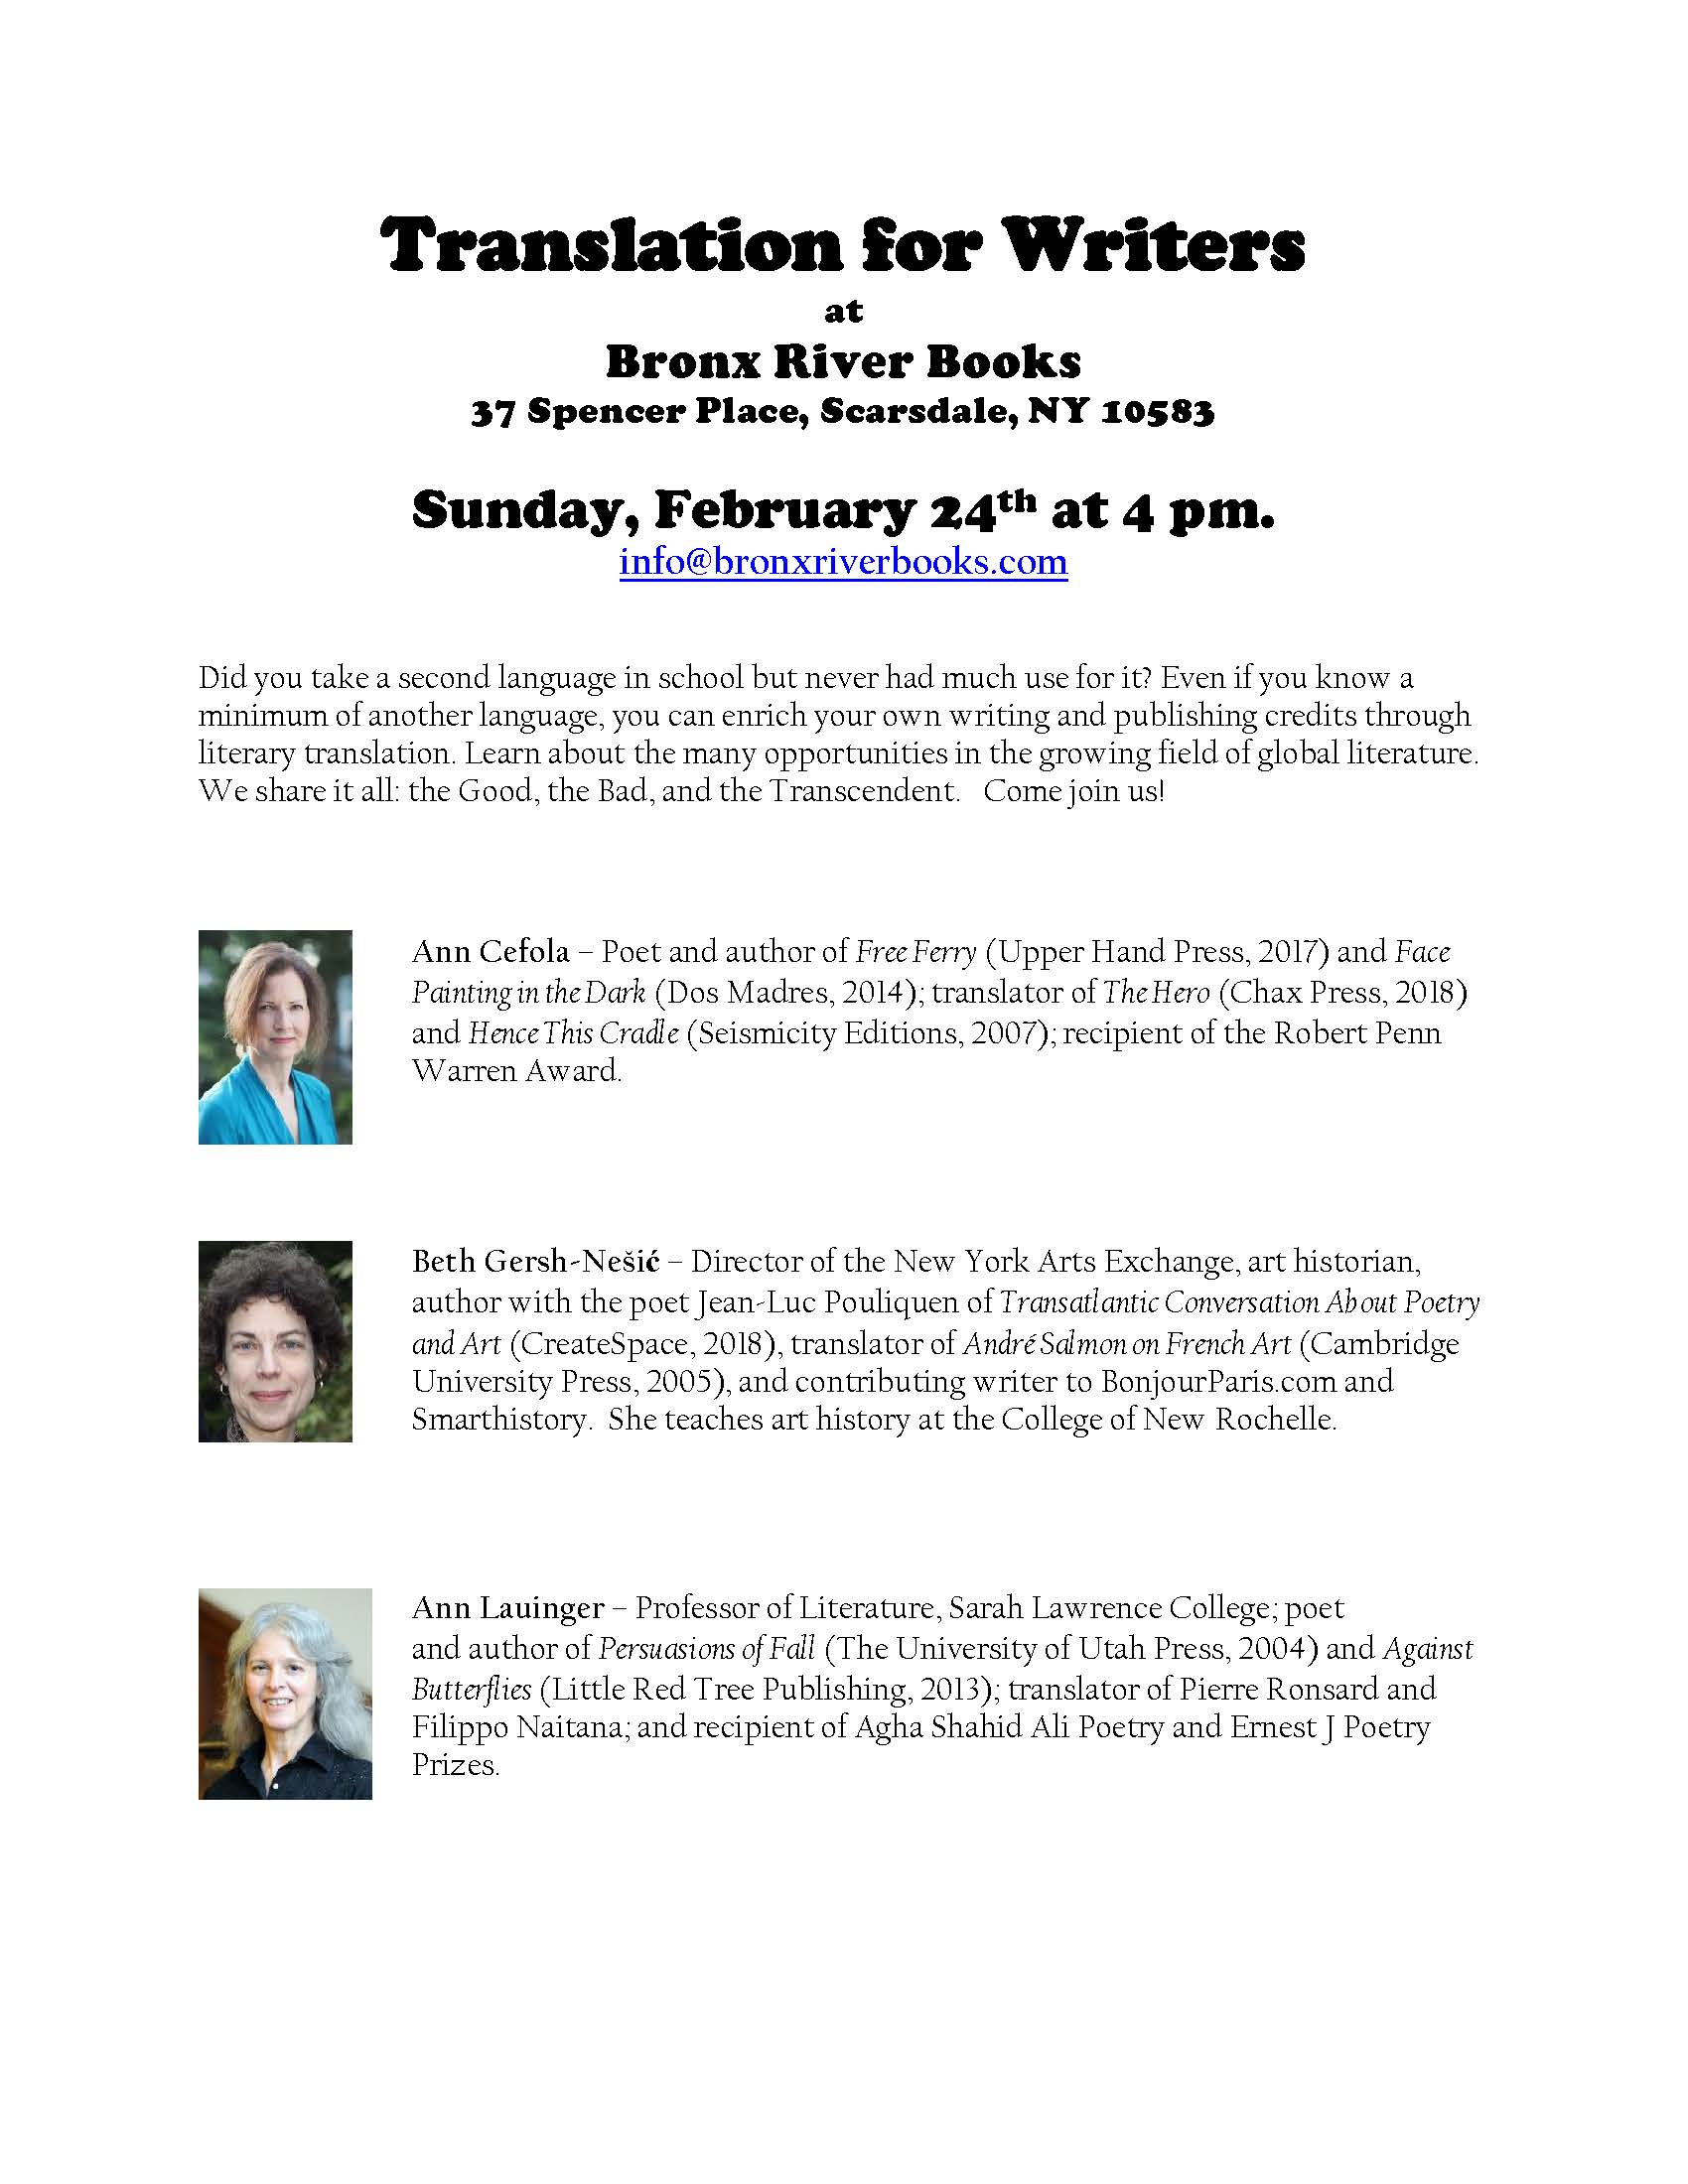 aaac0326f85 Translation for Writers event flyer